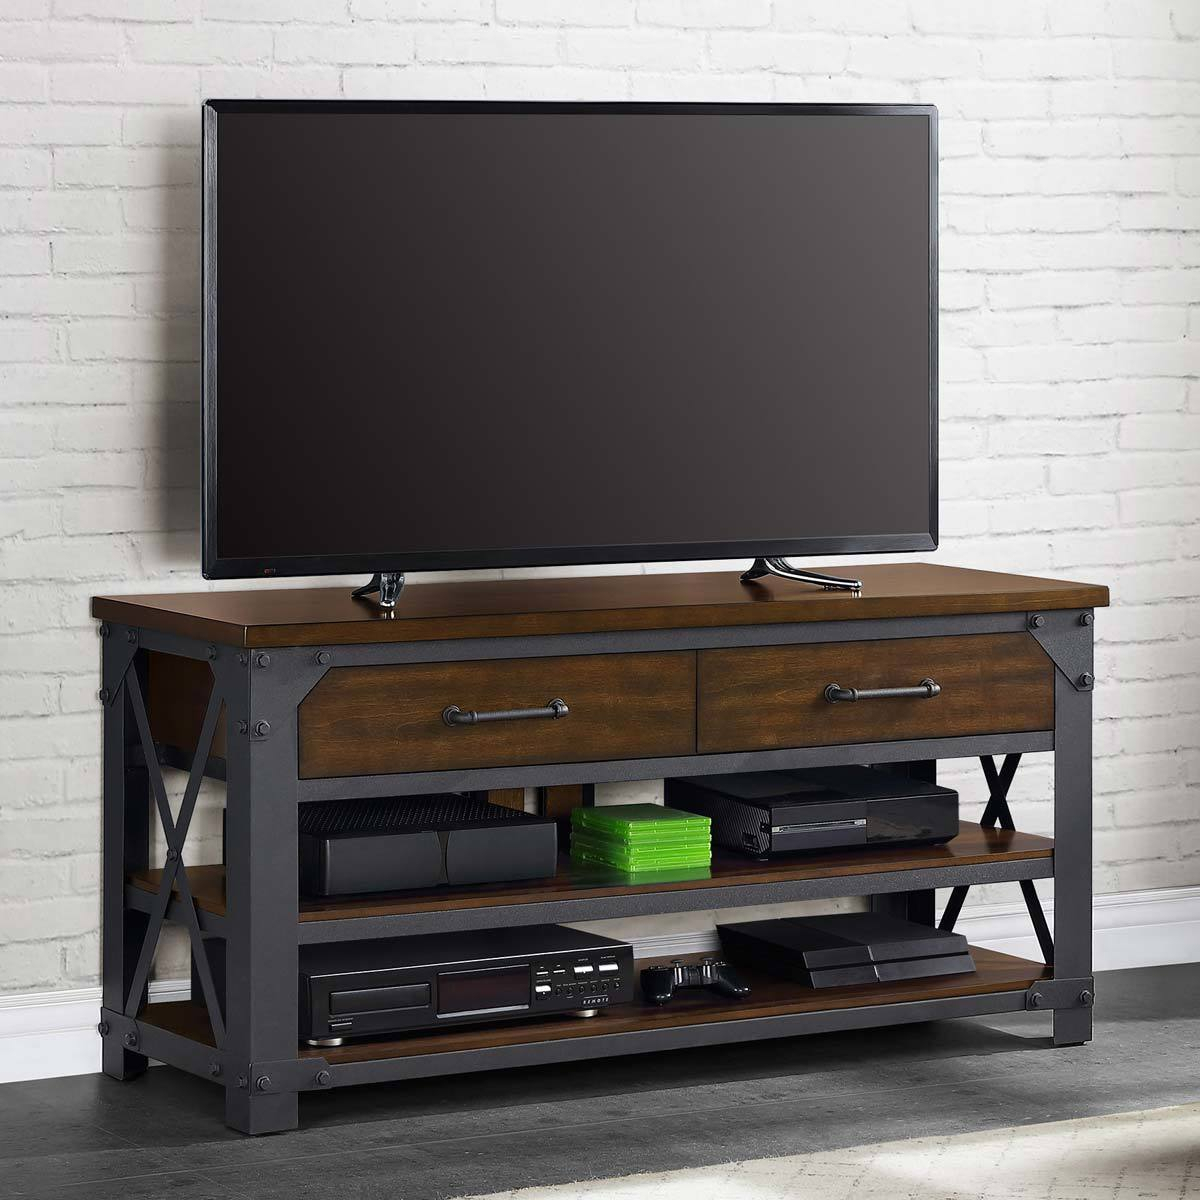 Bayside Furnishings Logan 3 In 1 Tv Stand For Tvs Up To 65 Intended For Logan Tv Stands (View 6 of 15)